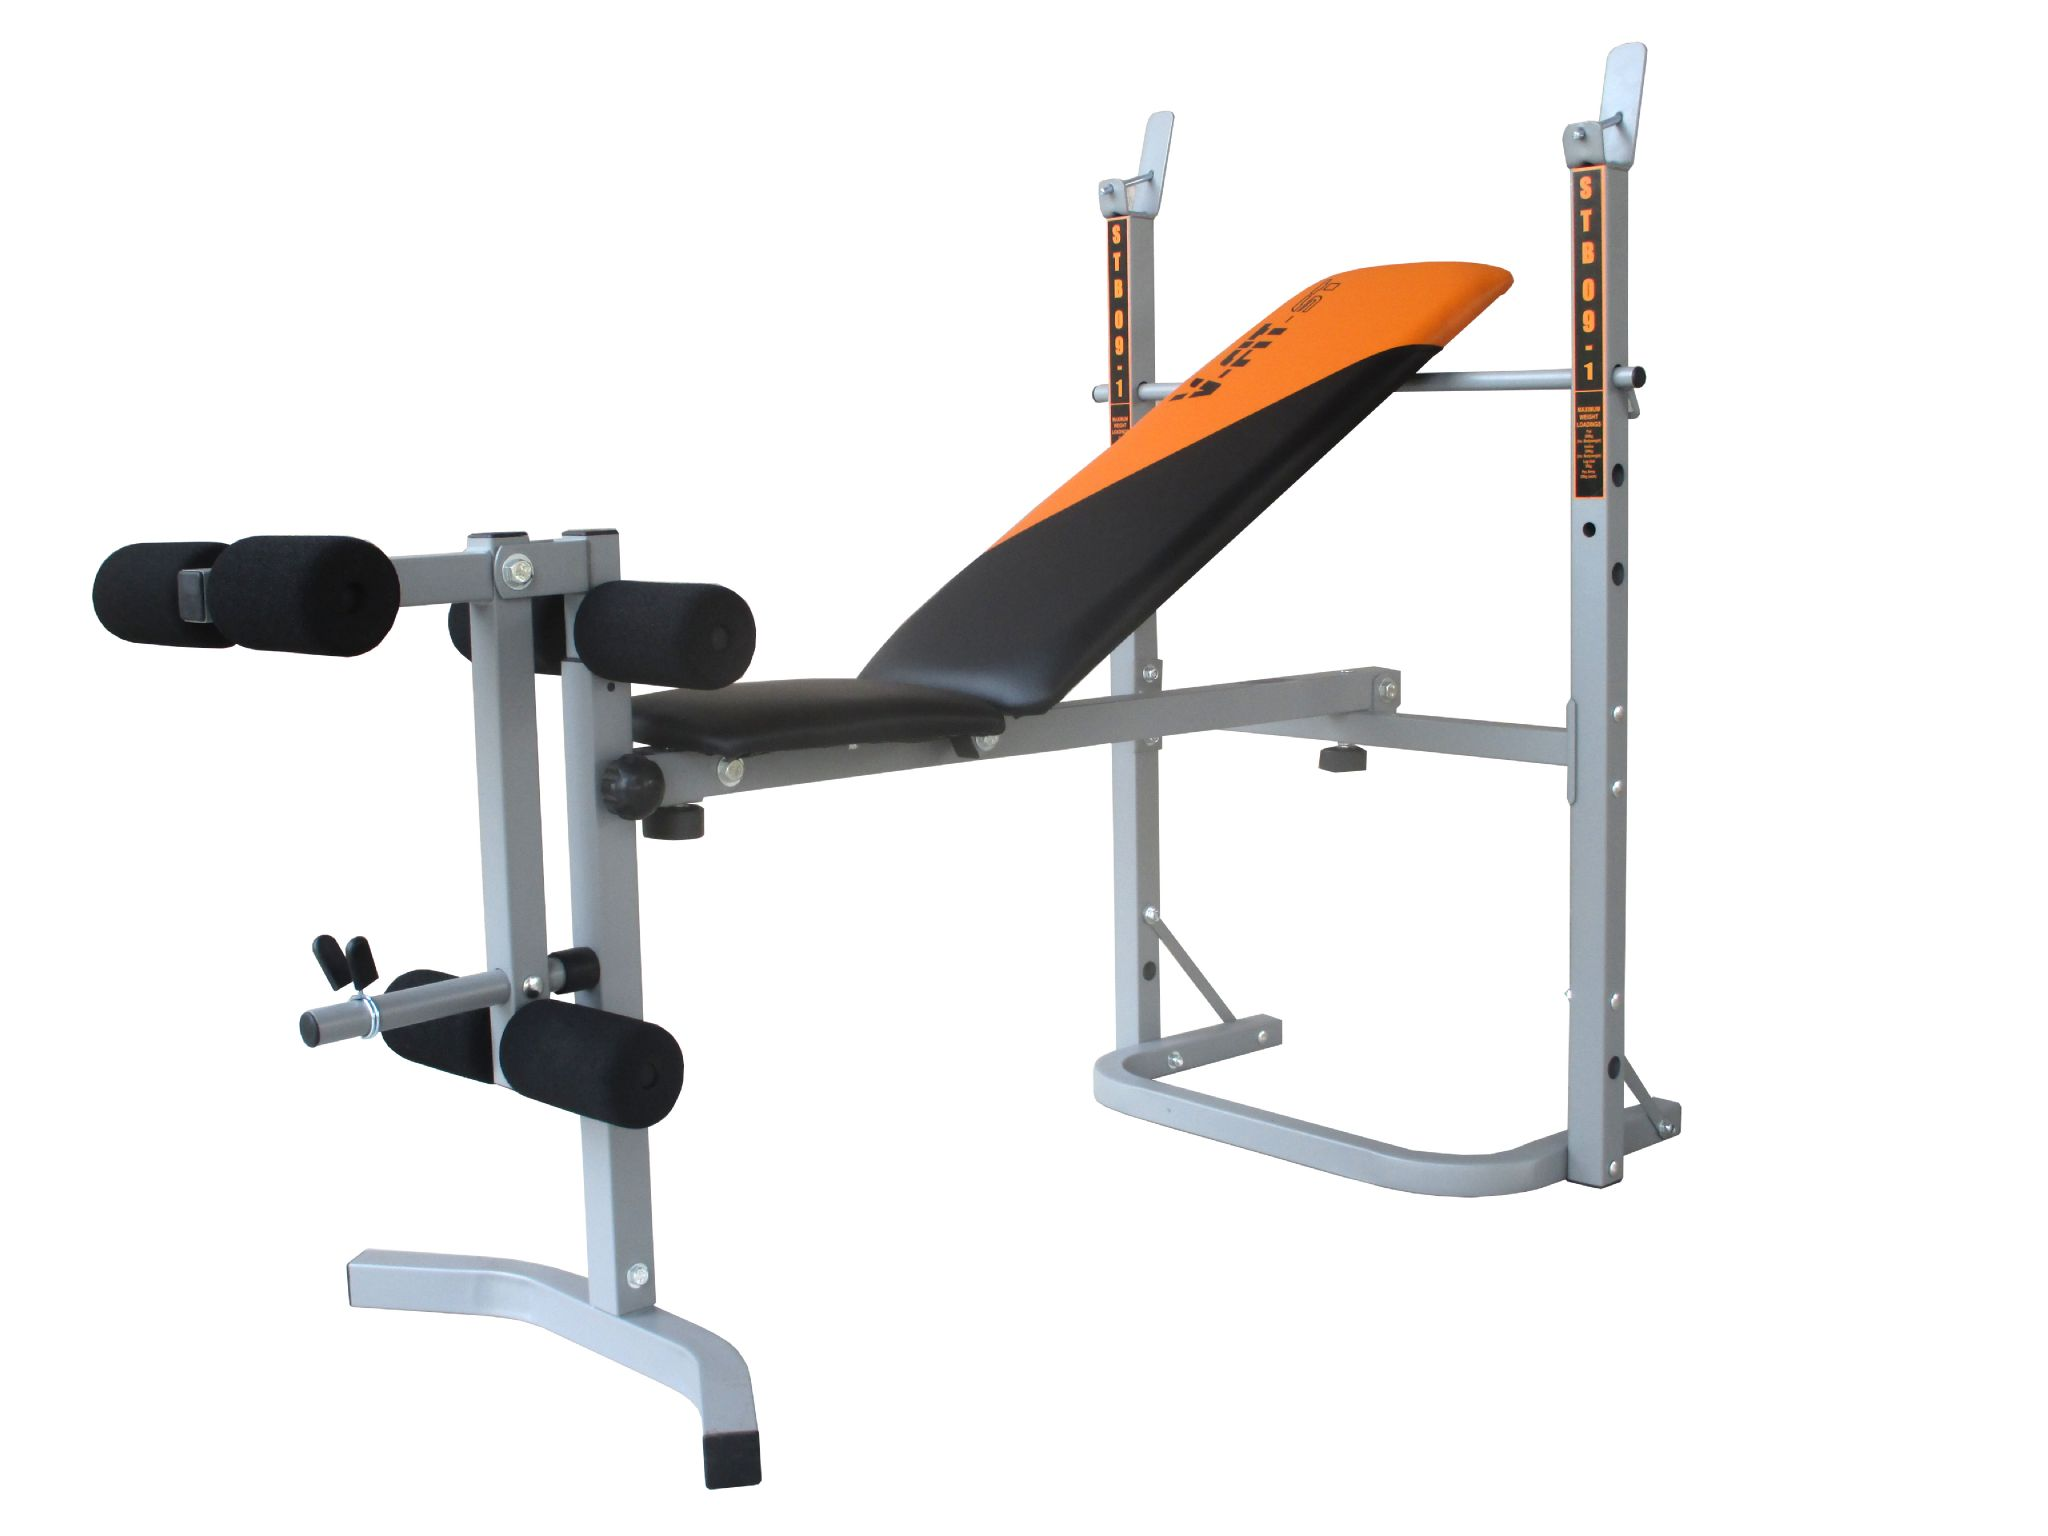 Craigslist Weight Bench | Weight Bench for Sale Used | Weight Bench for Sale Craigslist